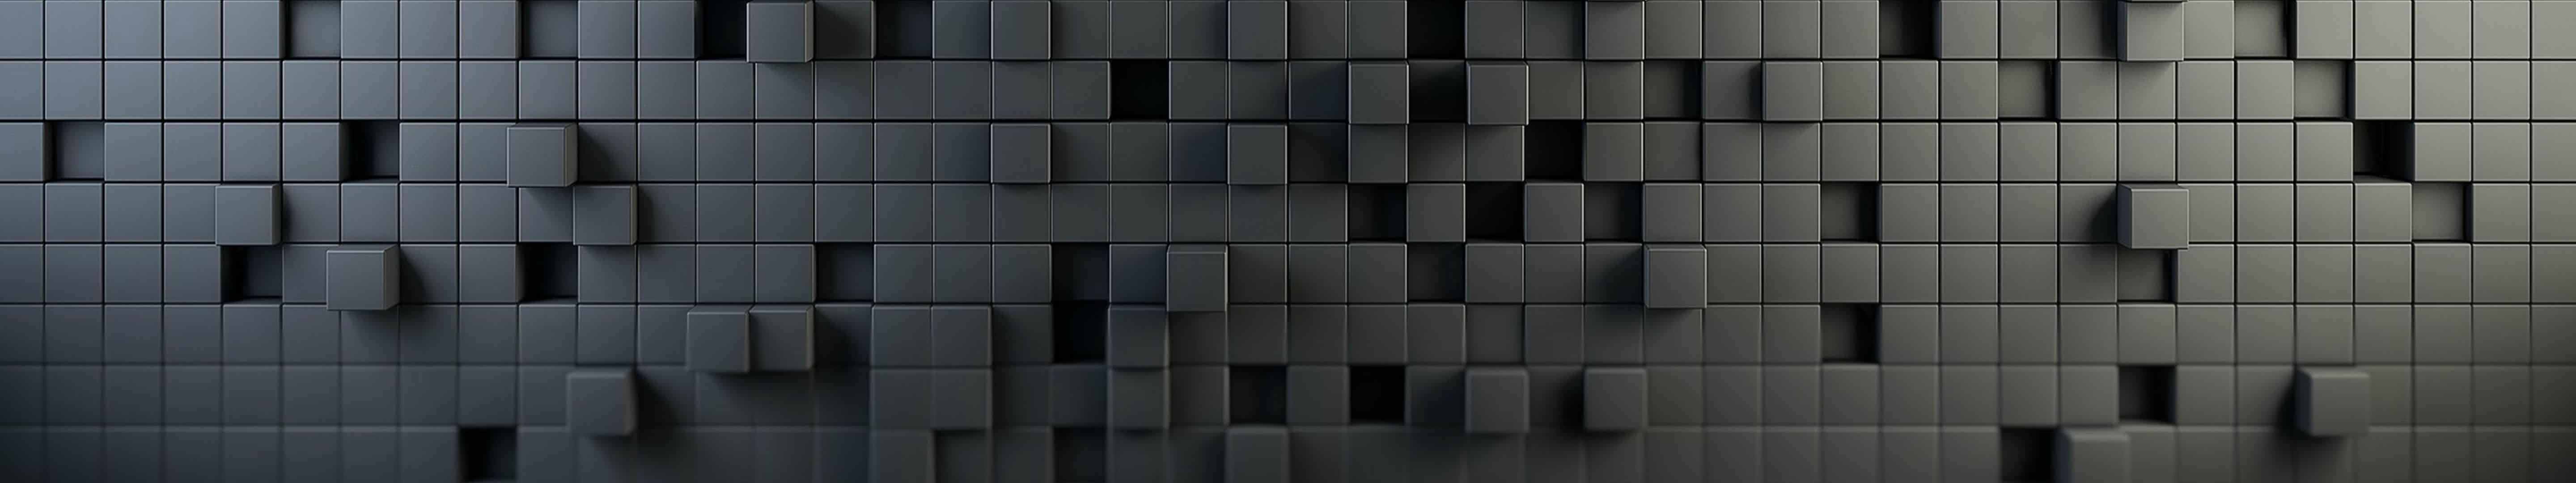 cube texture grey triple monitor wallpaper